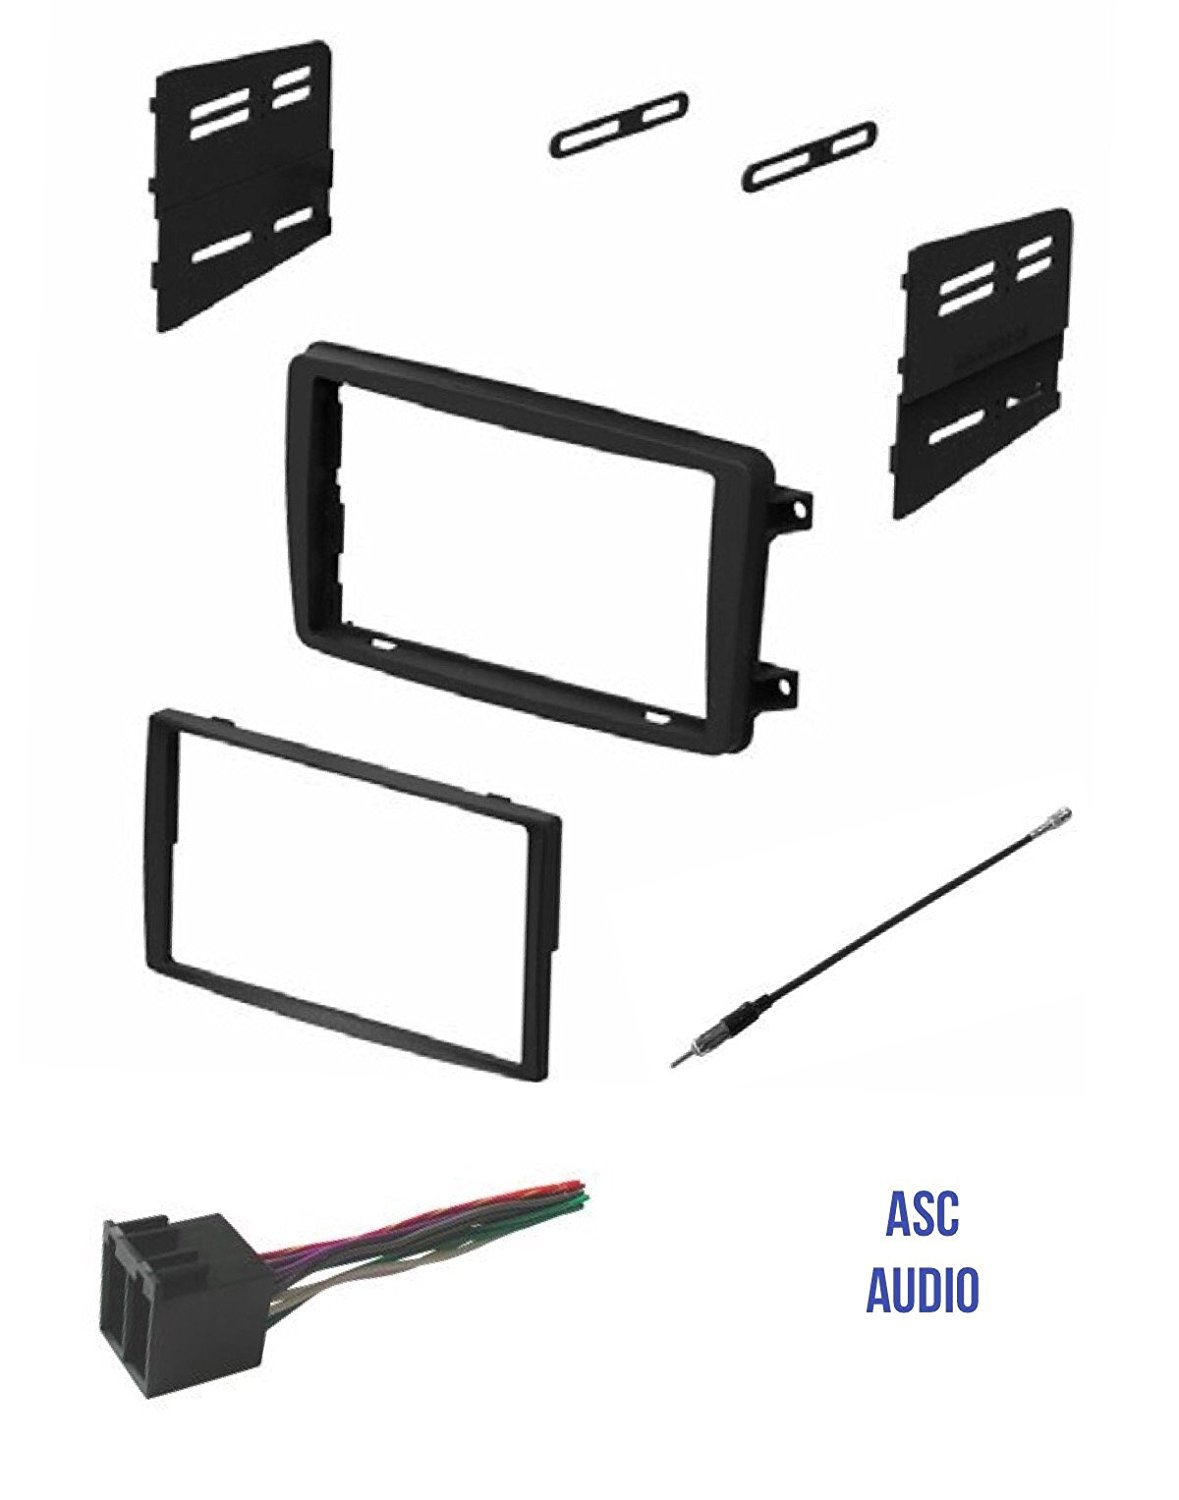 hight resolution of asc audio car stereo radio install dash kit wire harness and antenna adapter to install a double din radio for some 2001 2002 2003 2004 mercedes c class